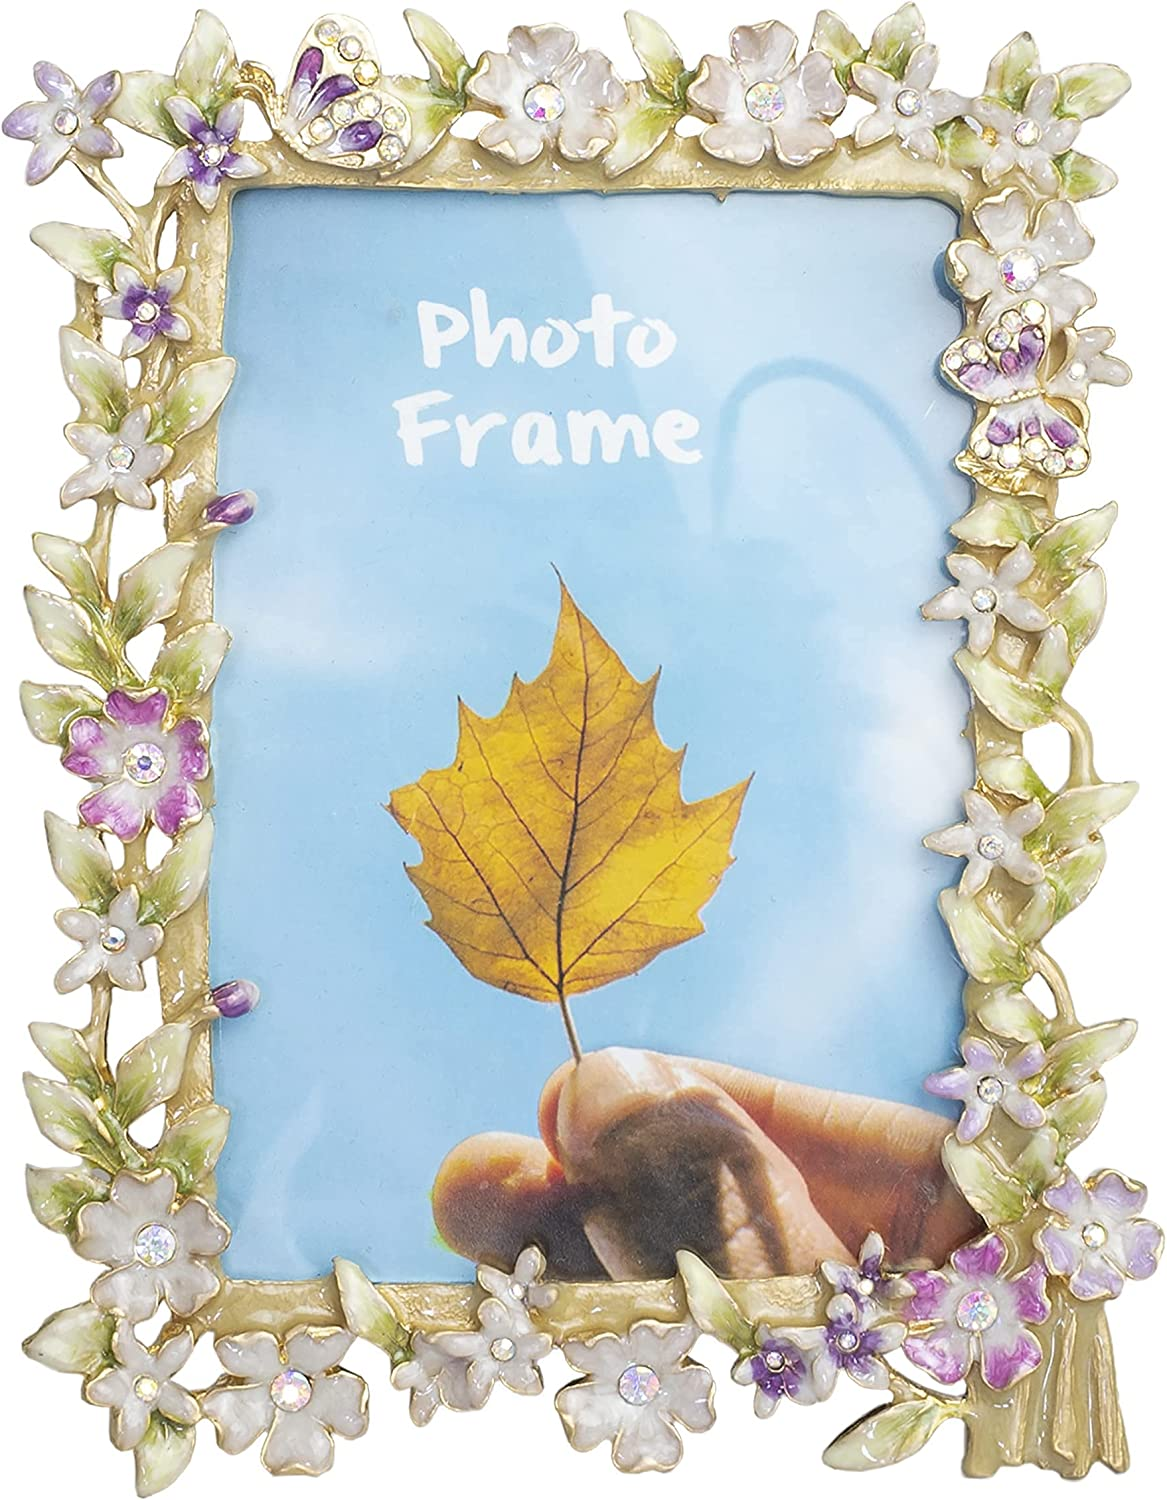 Tricune Picture Frame 3.5x5, Vintage Photo Frame Made of Pewter Metal and High Definition Glass for Table Top Display, Home Deco (3x3.5 inch, Flowers)